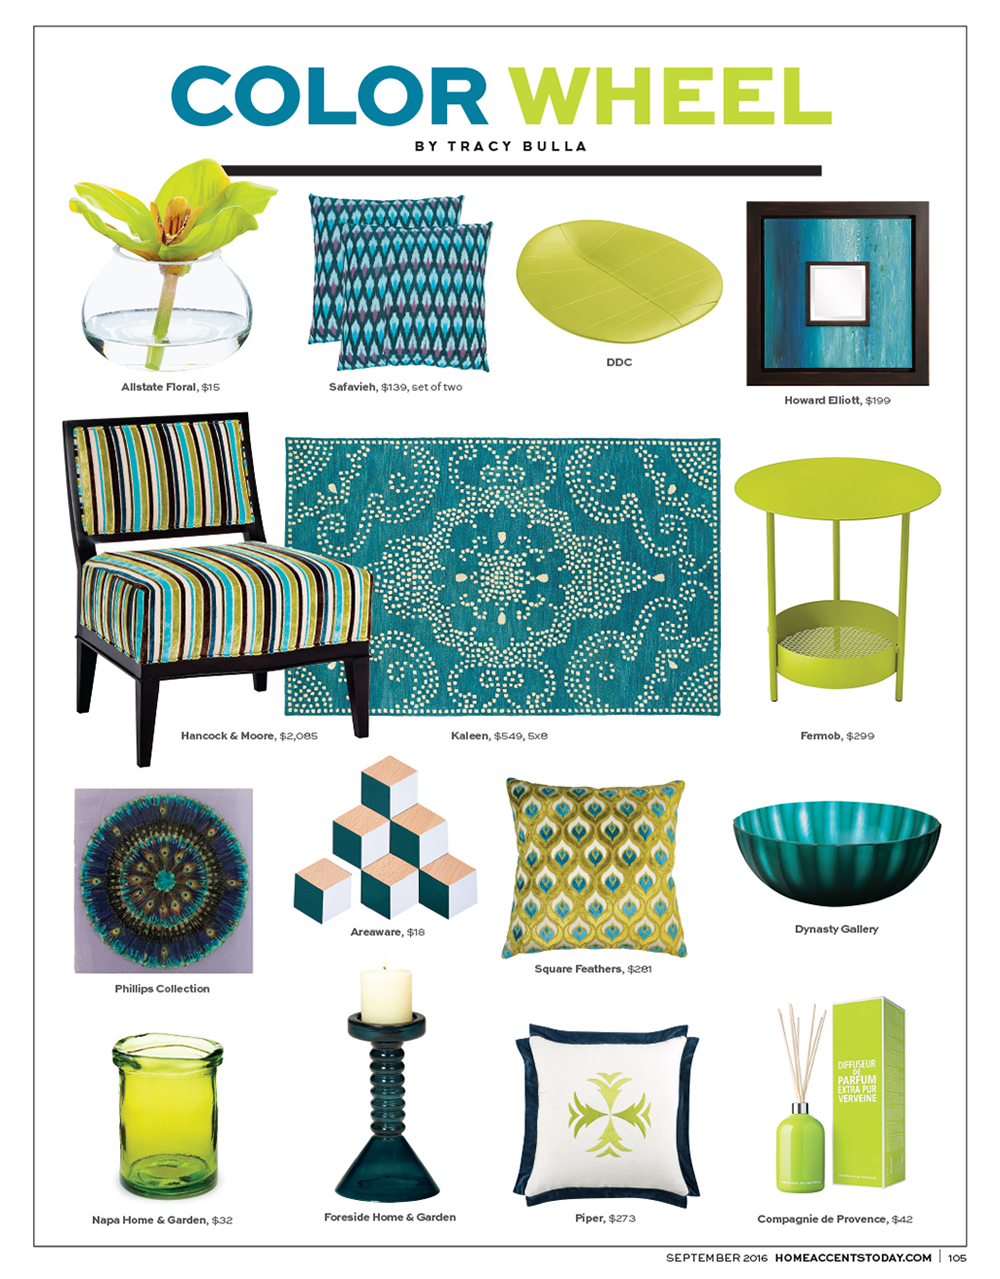 Home Accents Today - 2016 September Color Wheel